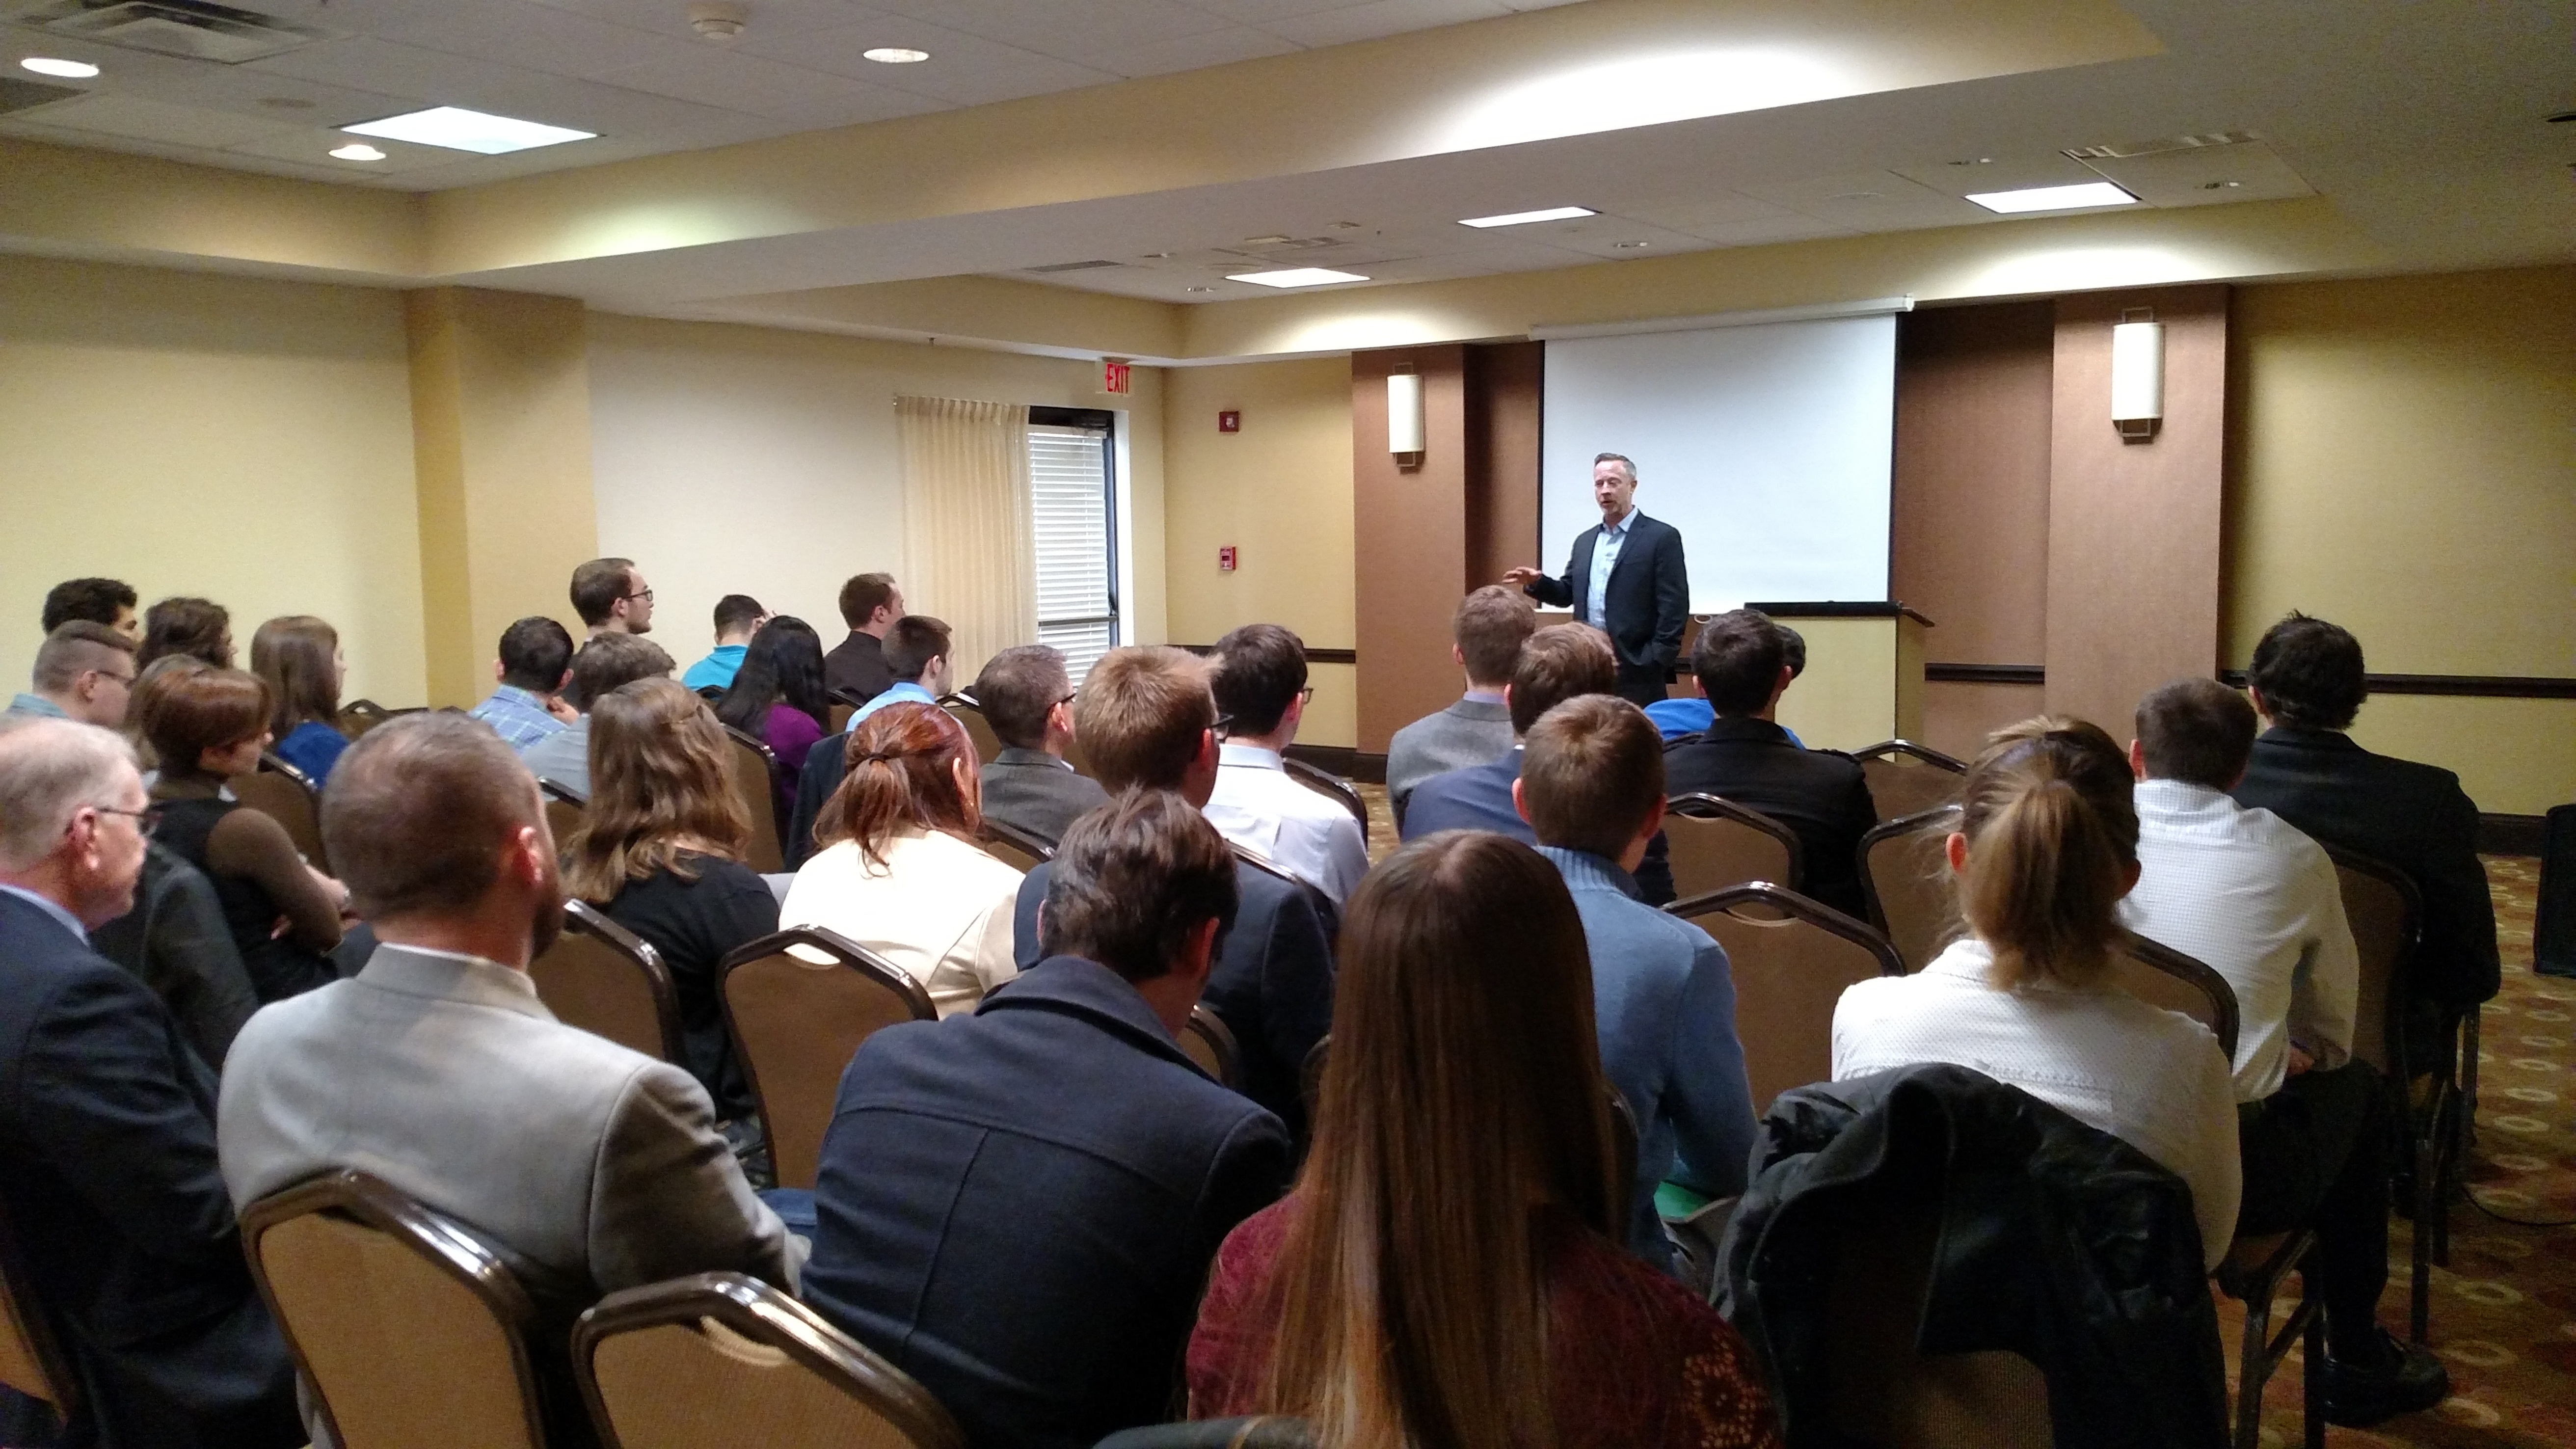 Max Everett speaks at the Patrick Henry College (PHC) American Politics and Policy (APP) conference